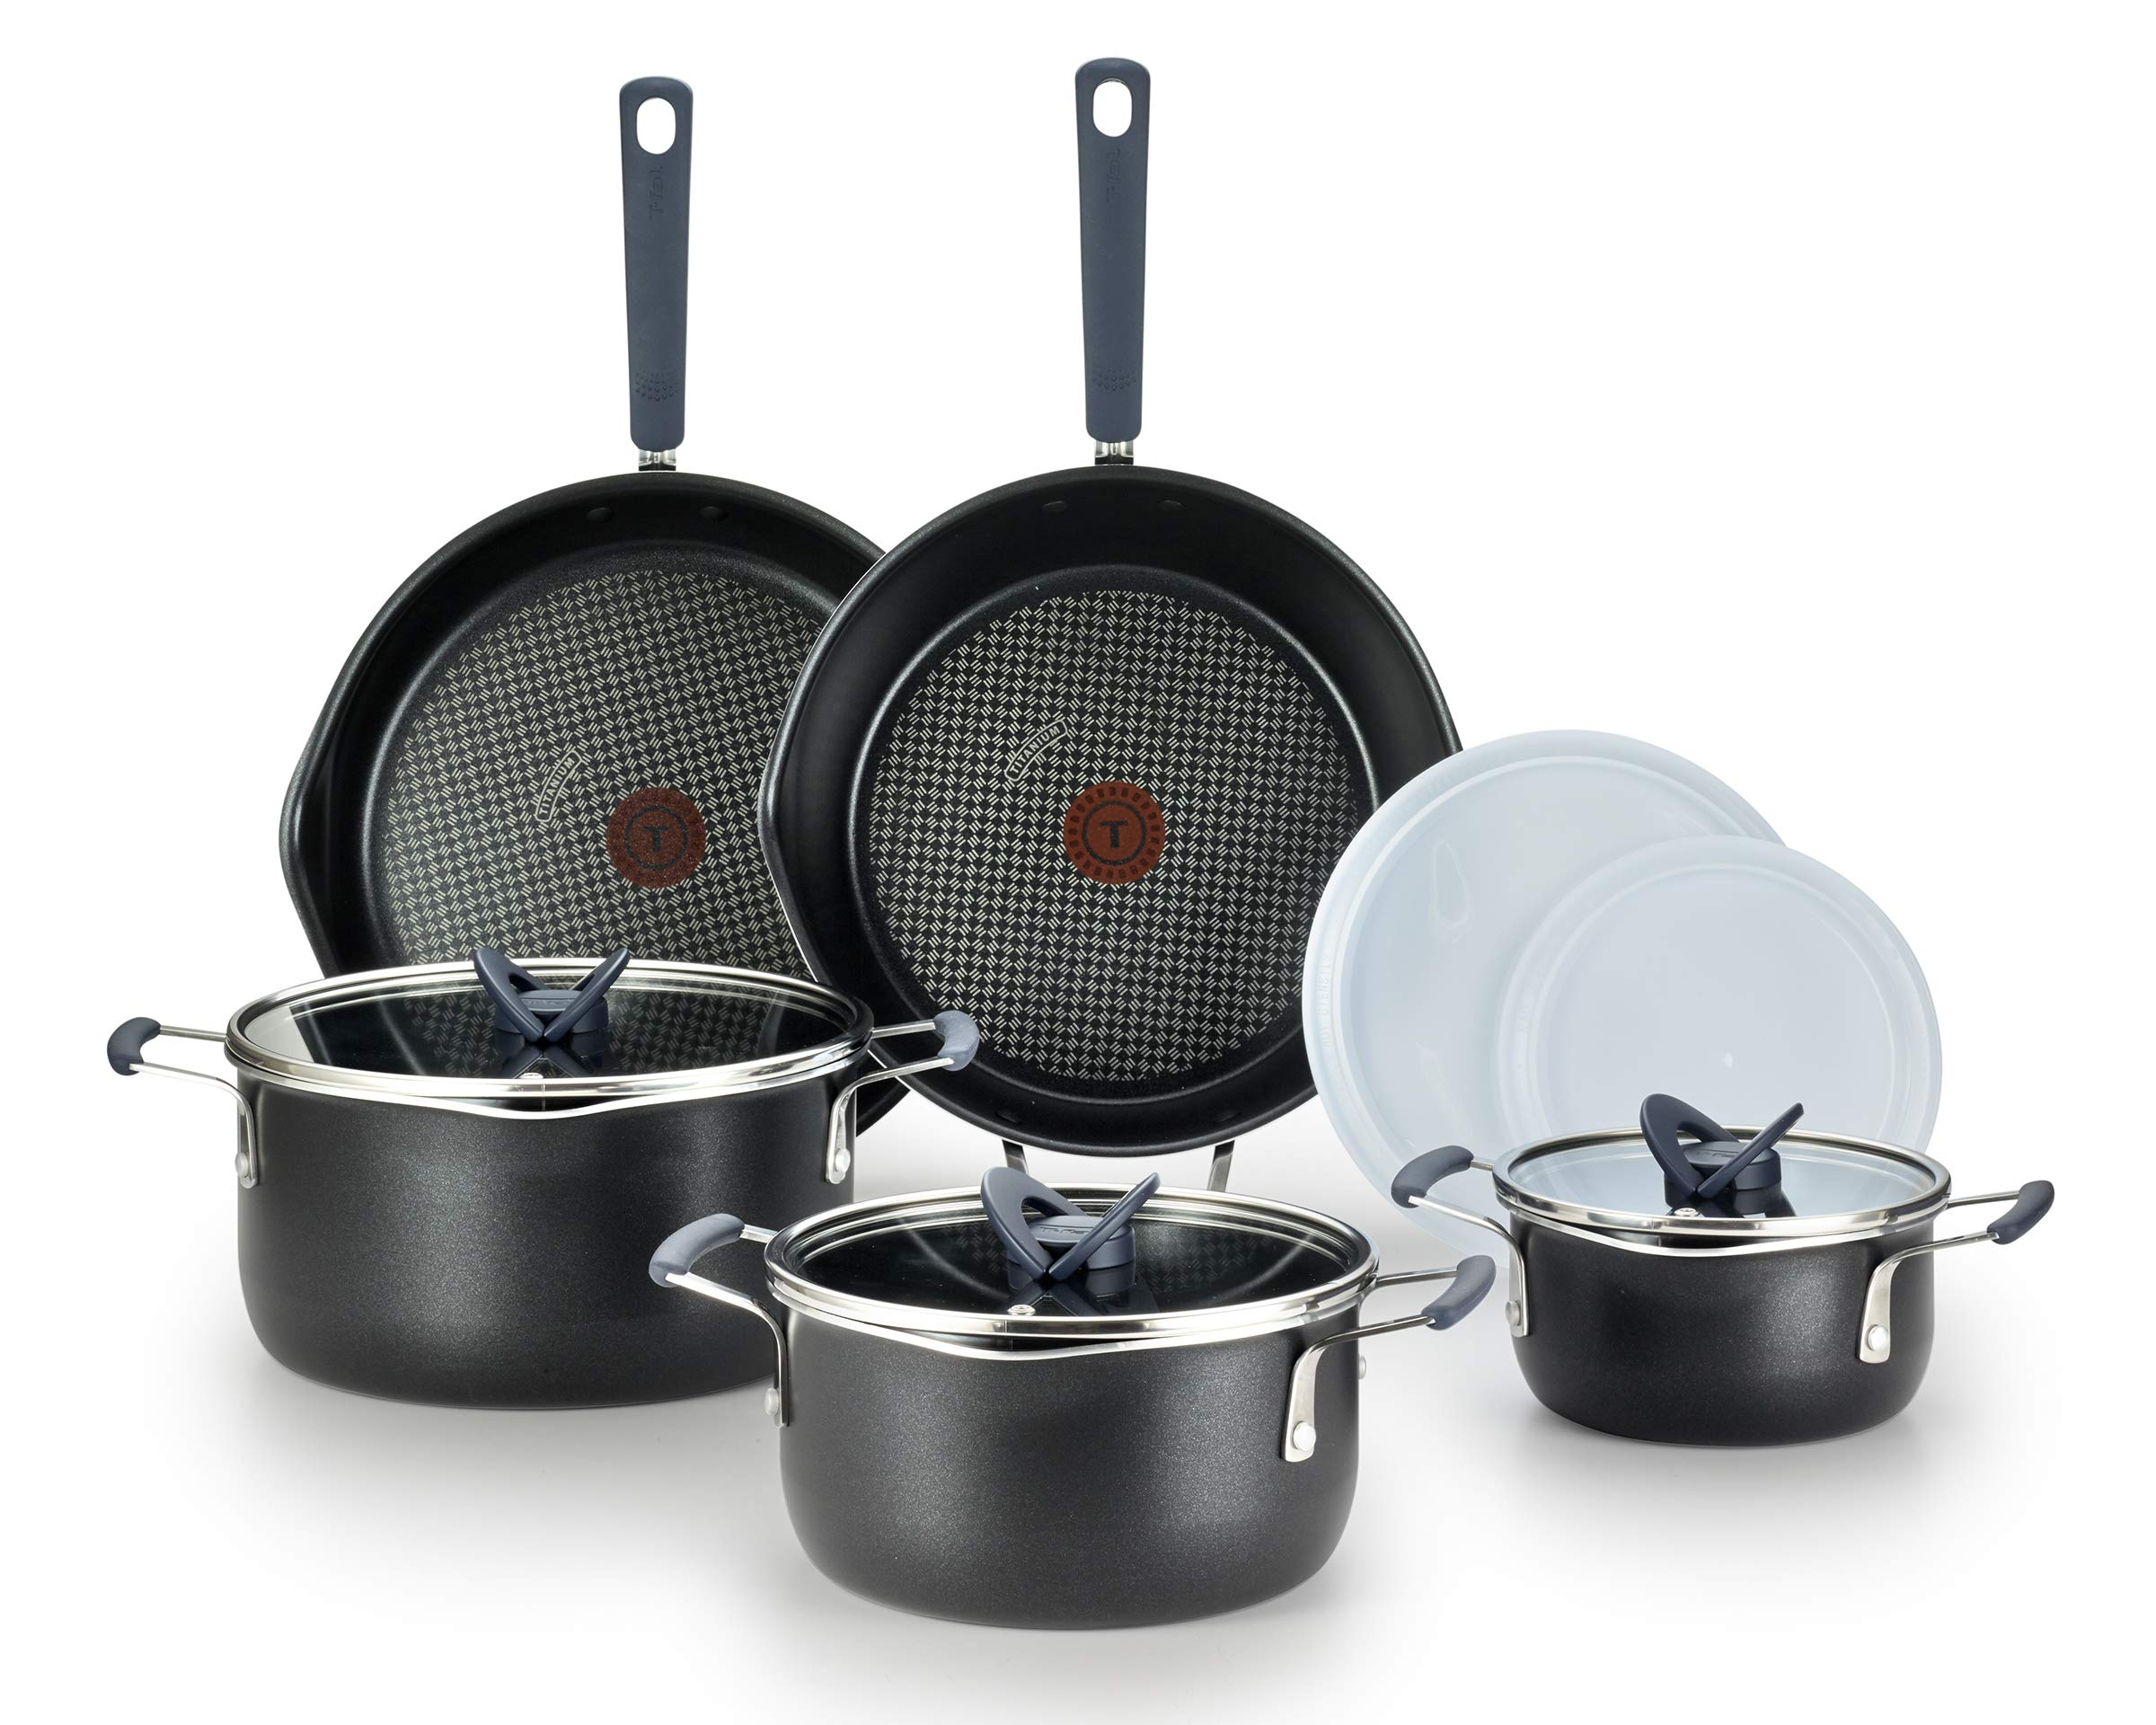 T-fal B210SA All-in- One Stackables Titanium Nonstick 10 Pieces Cookware Set, Multifunctional, Dishwasher Safe, Black